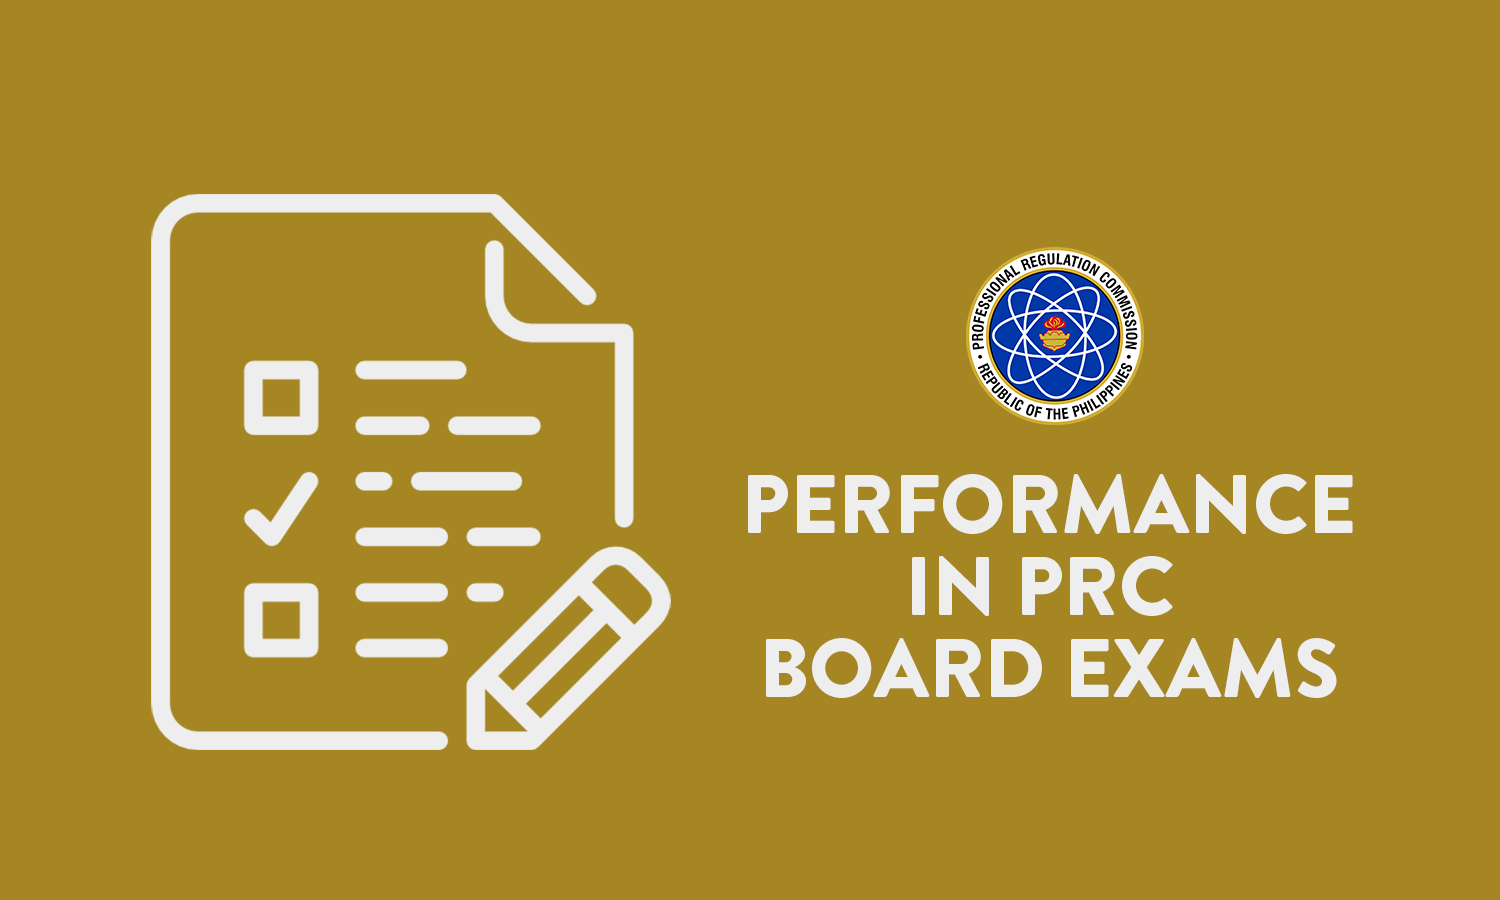 Performance in PRC Board Exams